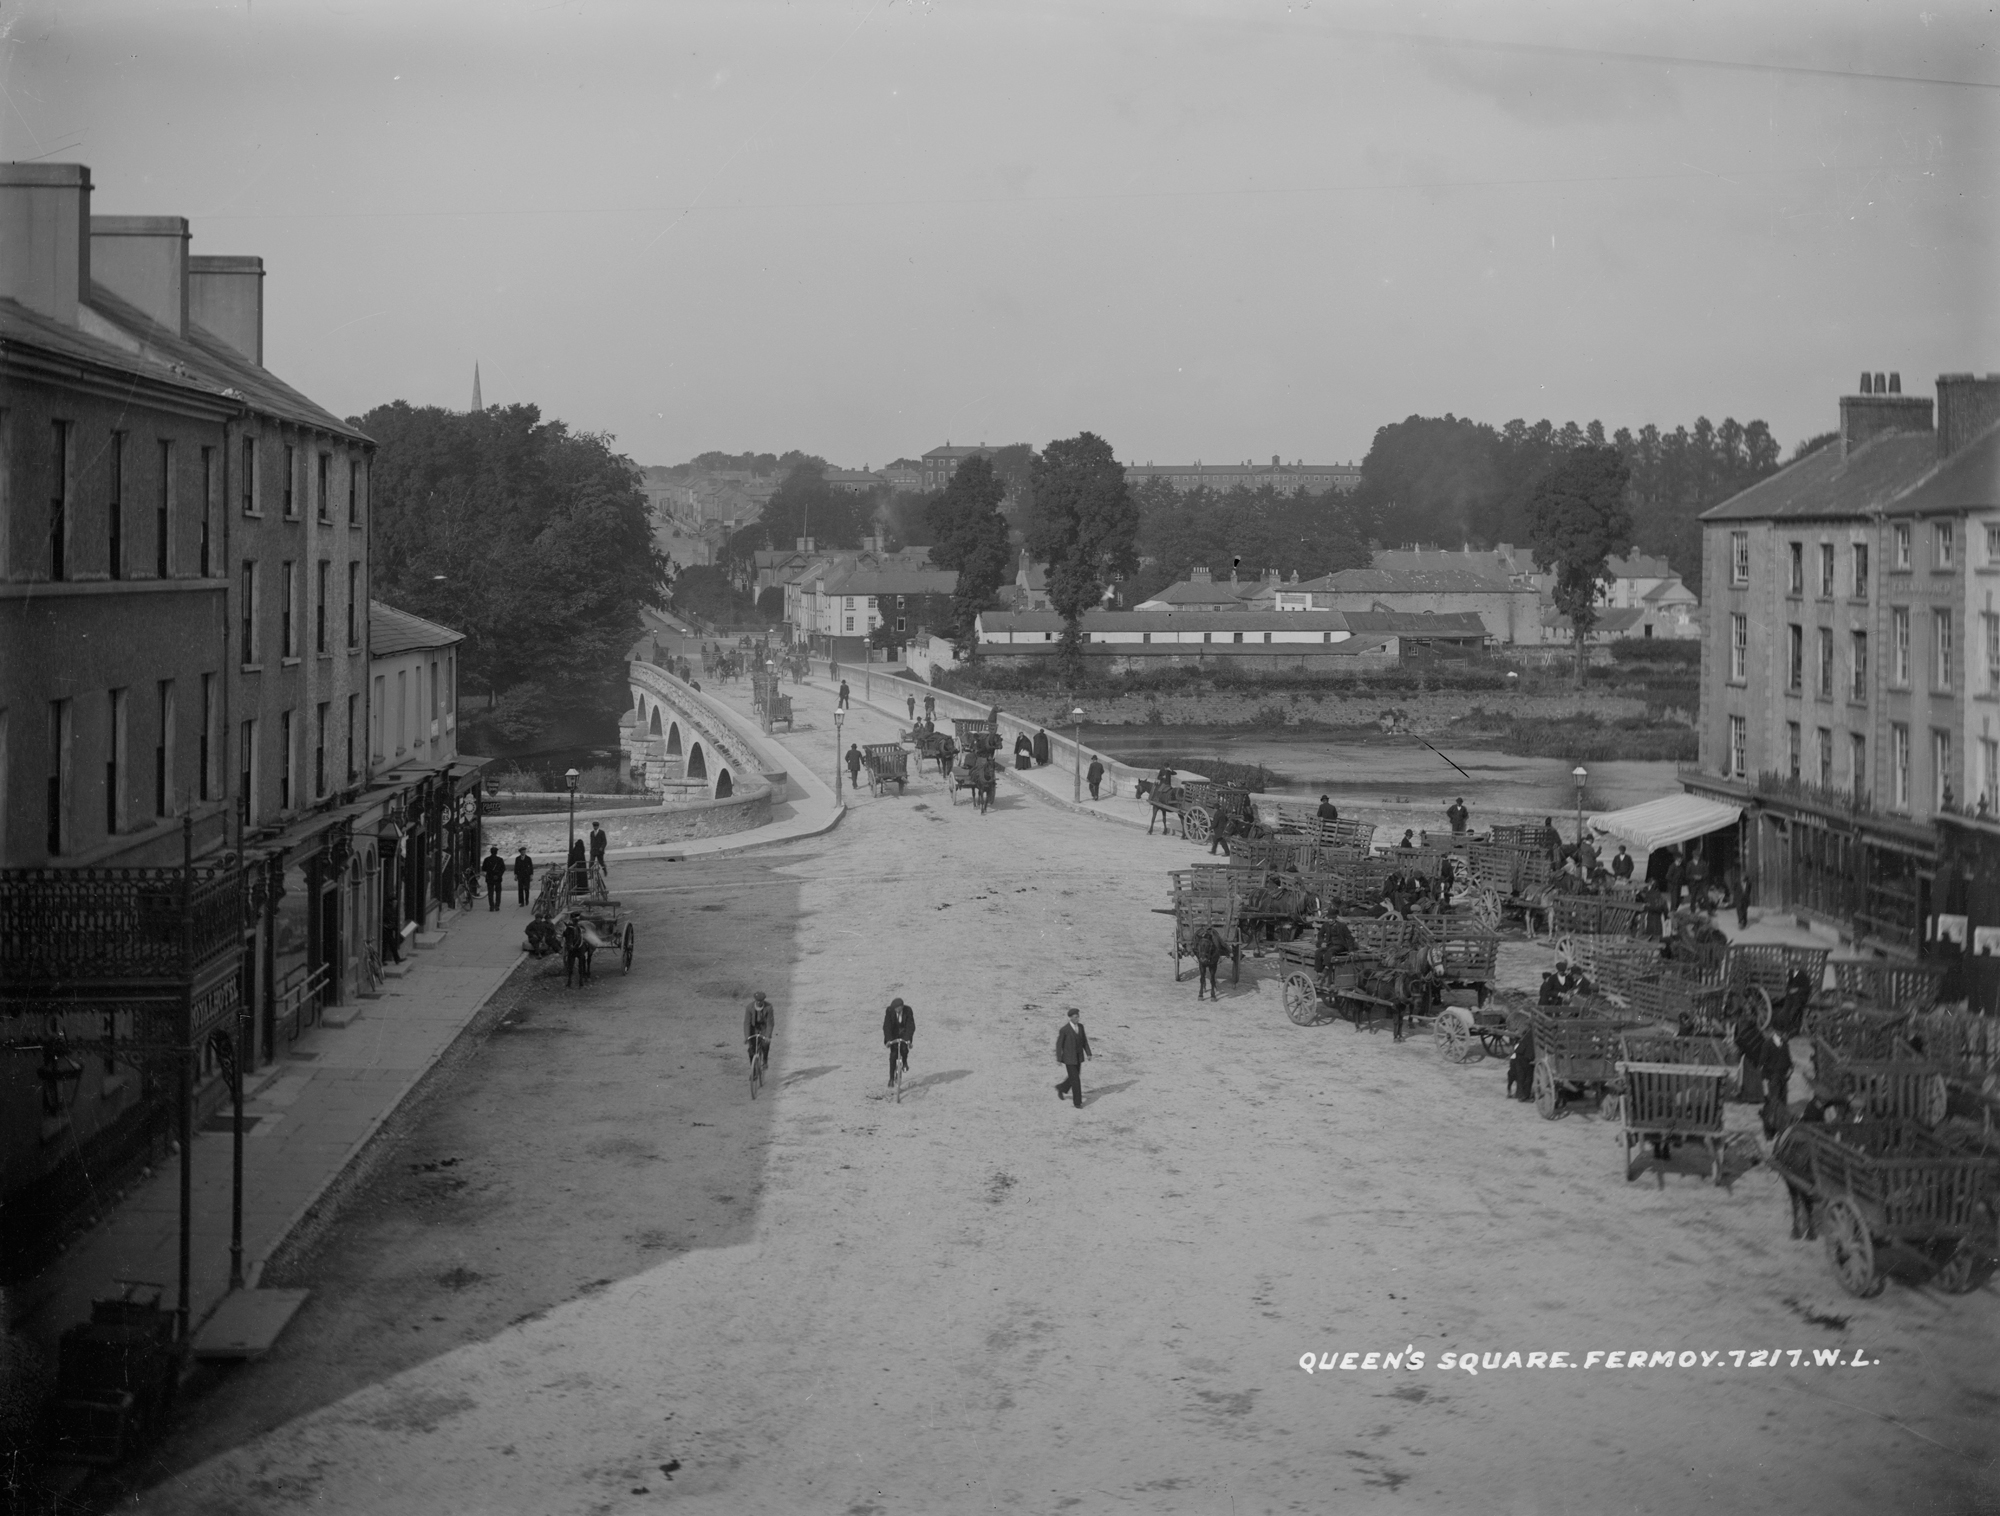 Queen's Square, Fermoy, Co. Cork